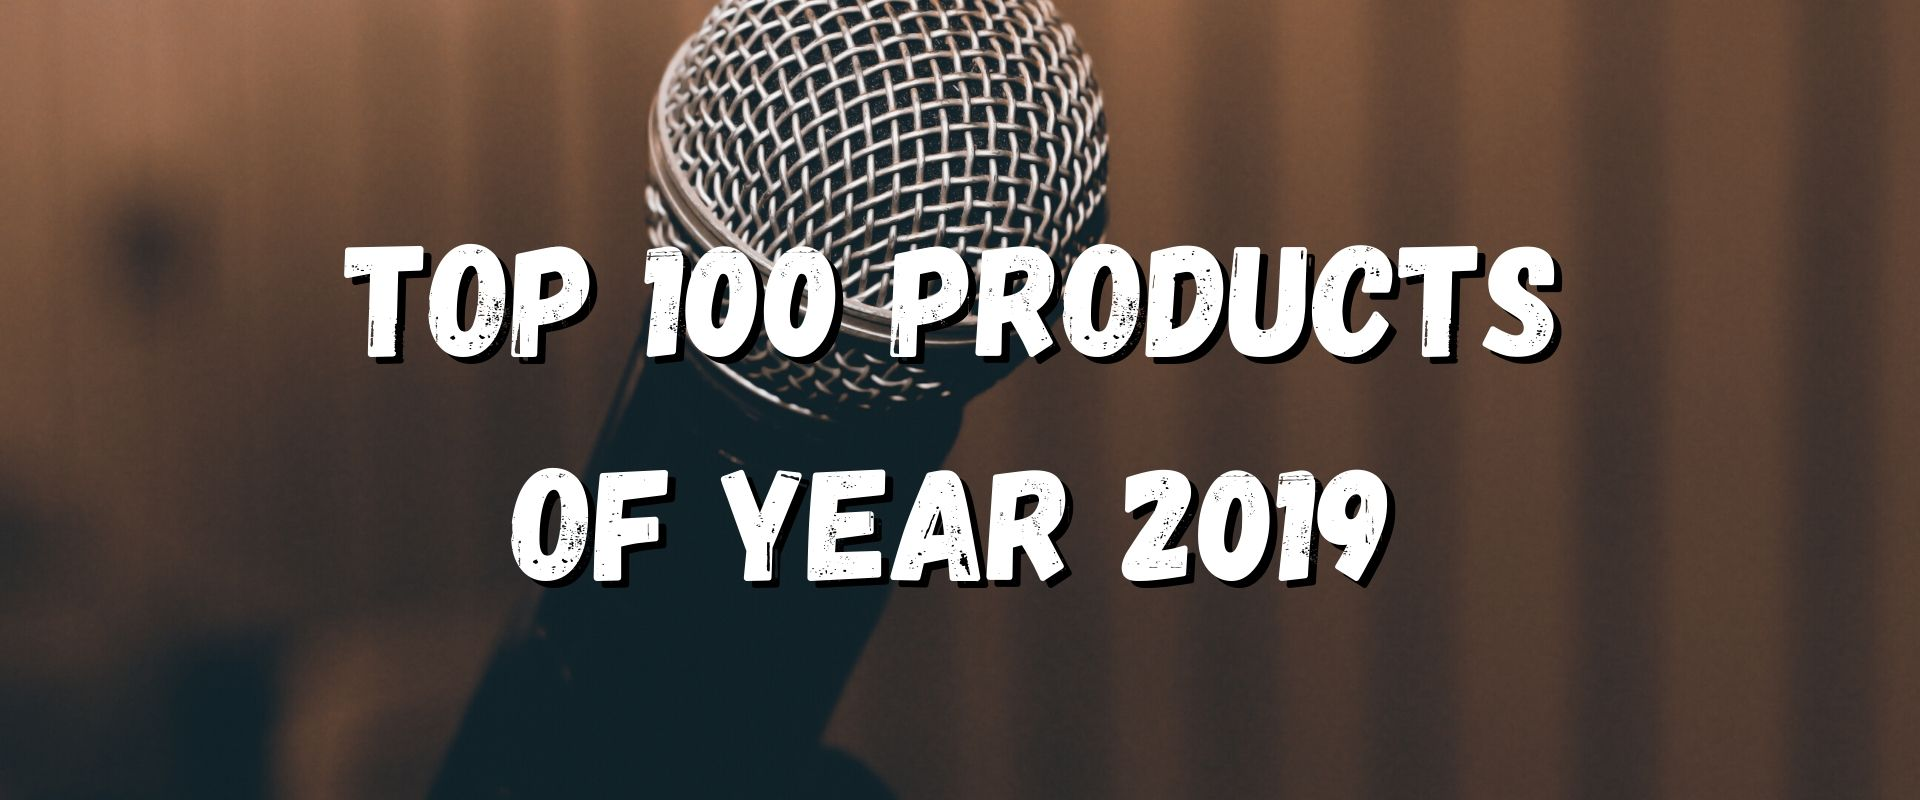 Top sellers of year 2019